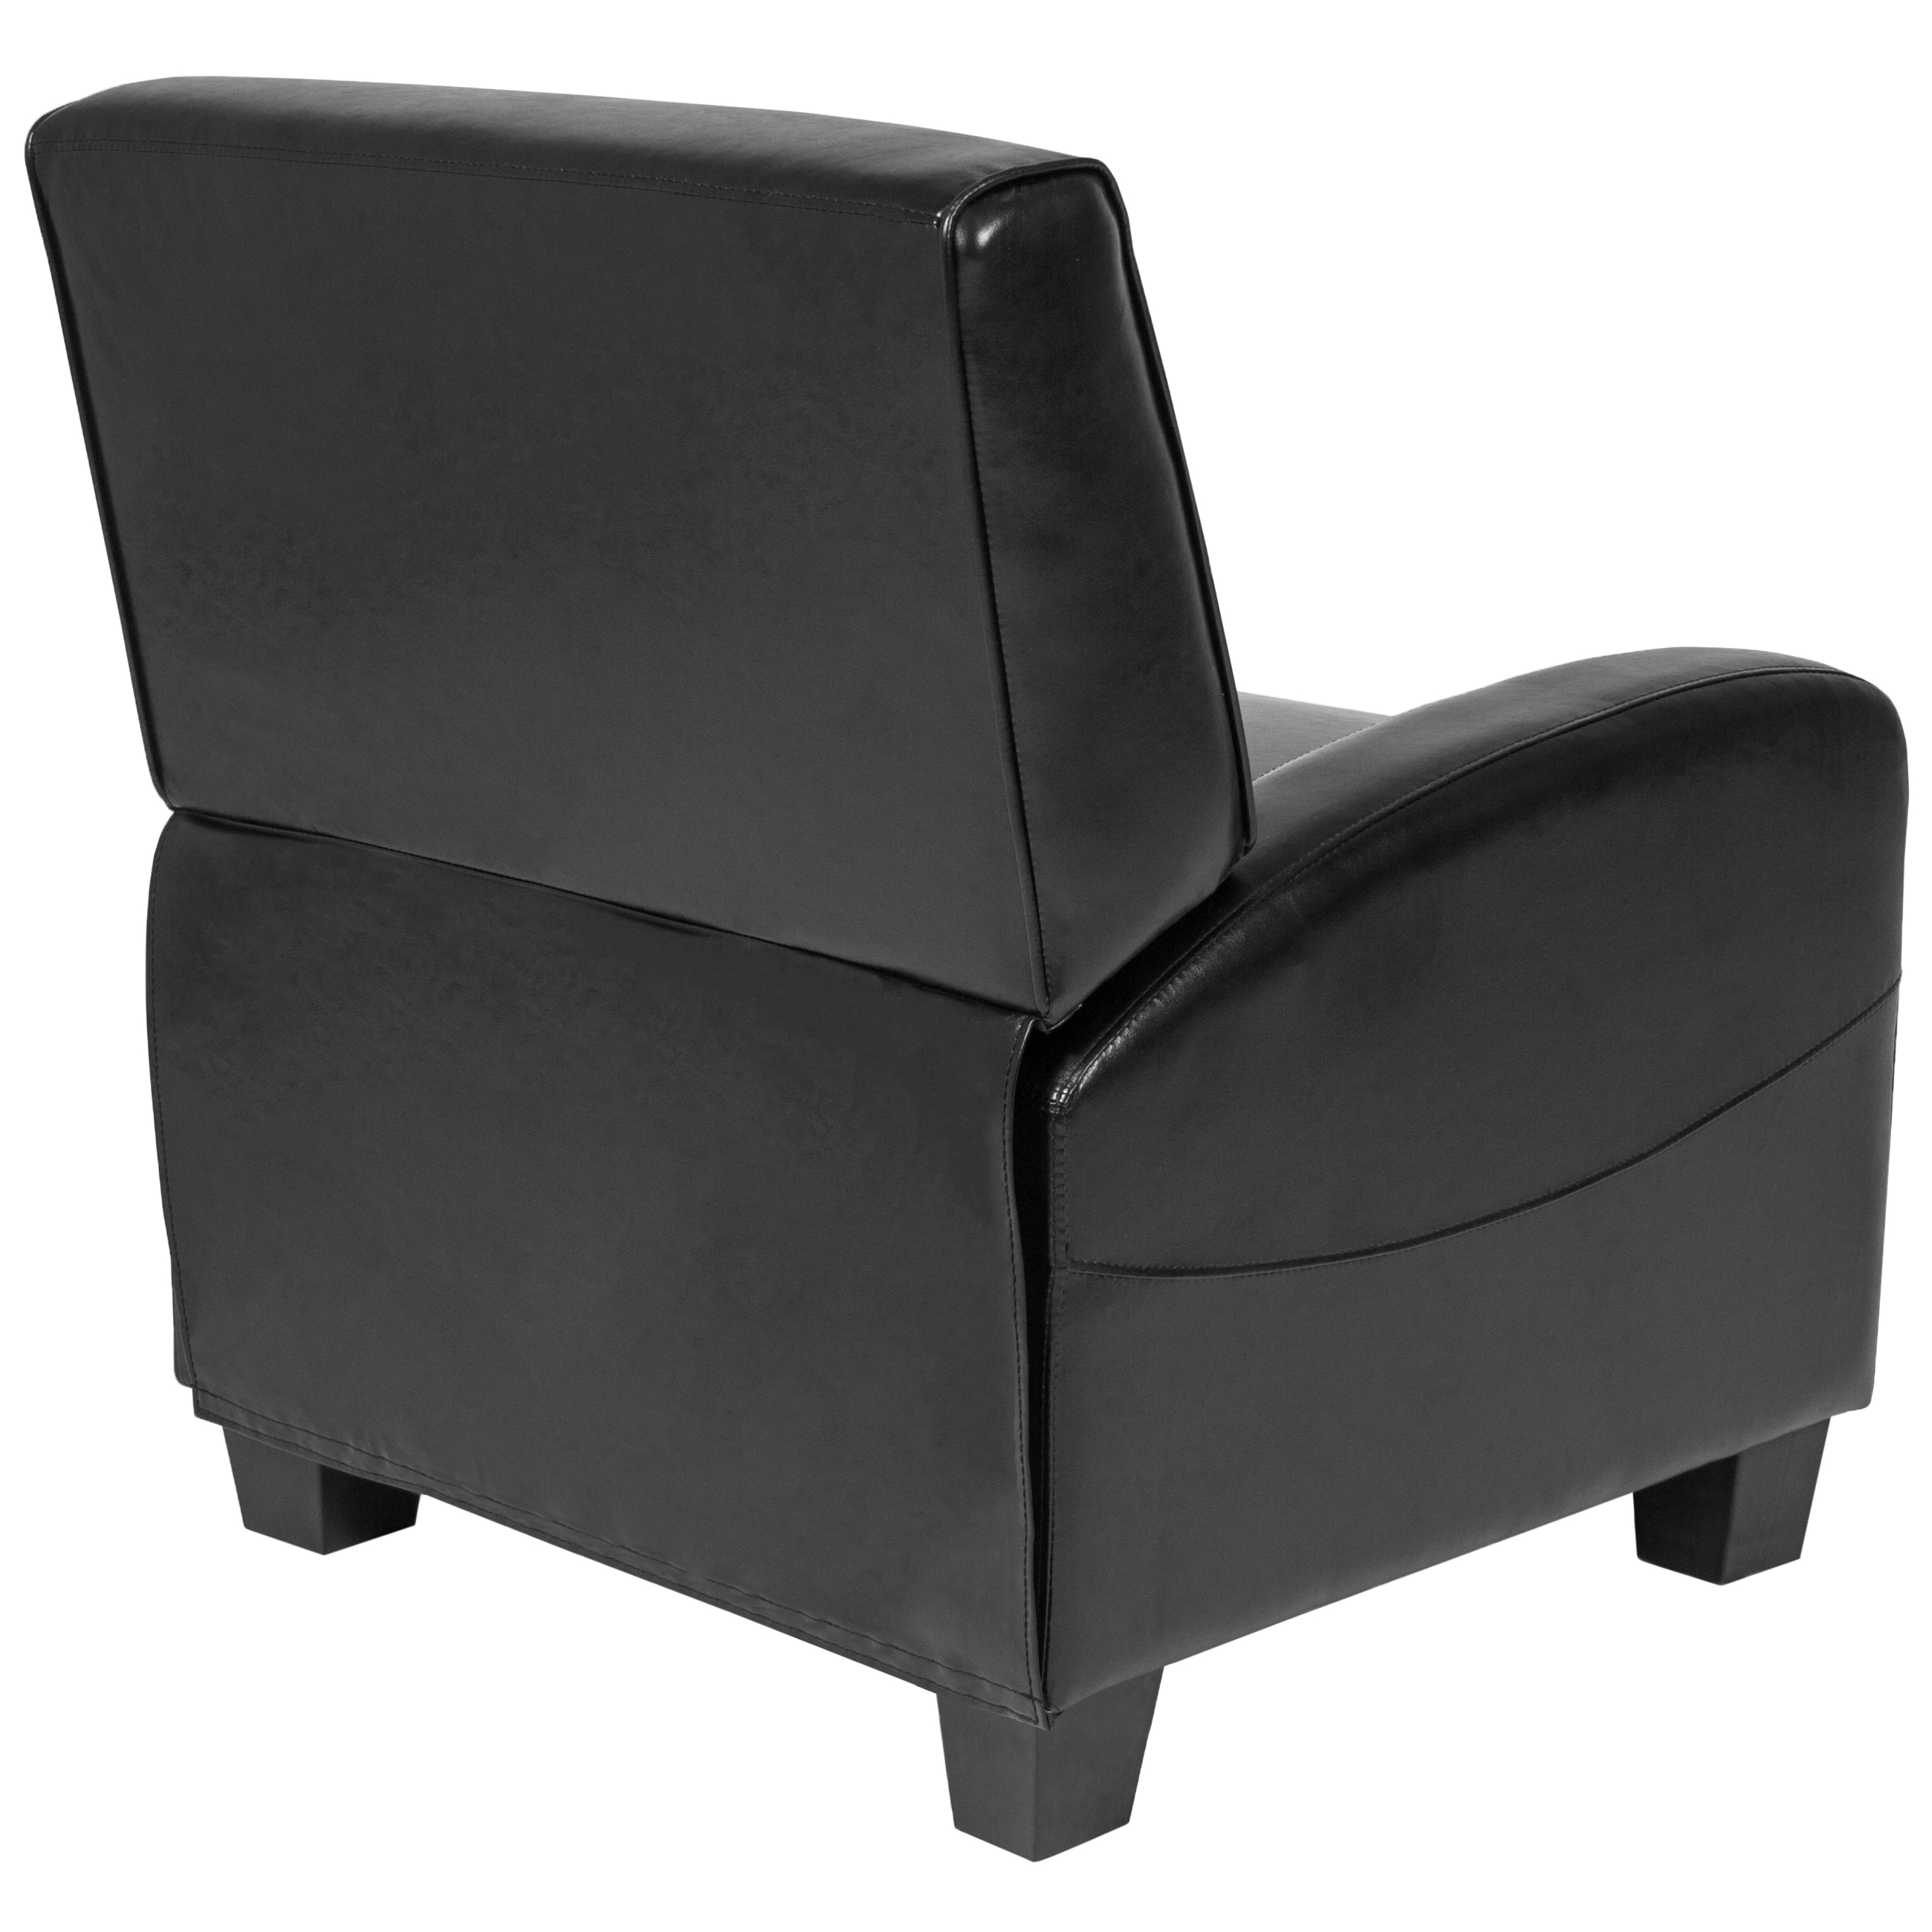 Best Choice Products Padded Upholstery Leather Home Theater Recliner Chair (Black)  sc 1 st  Walmart : new style super comfort recliner - islam-shia.org